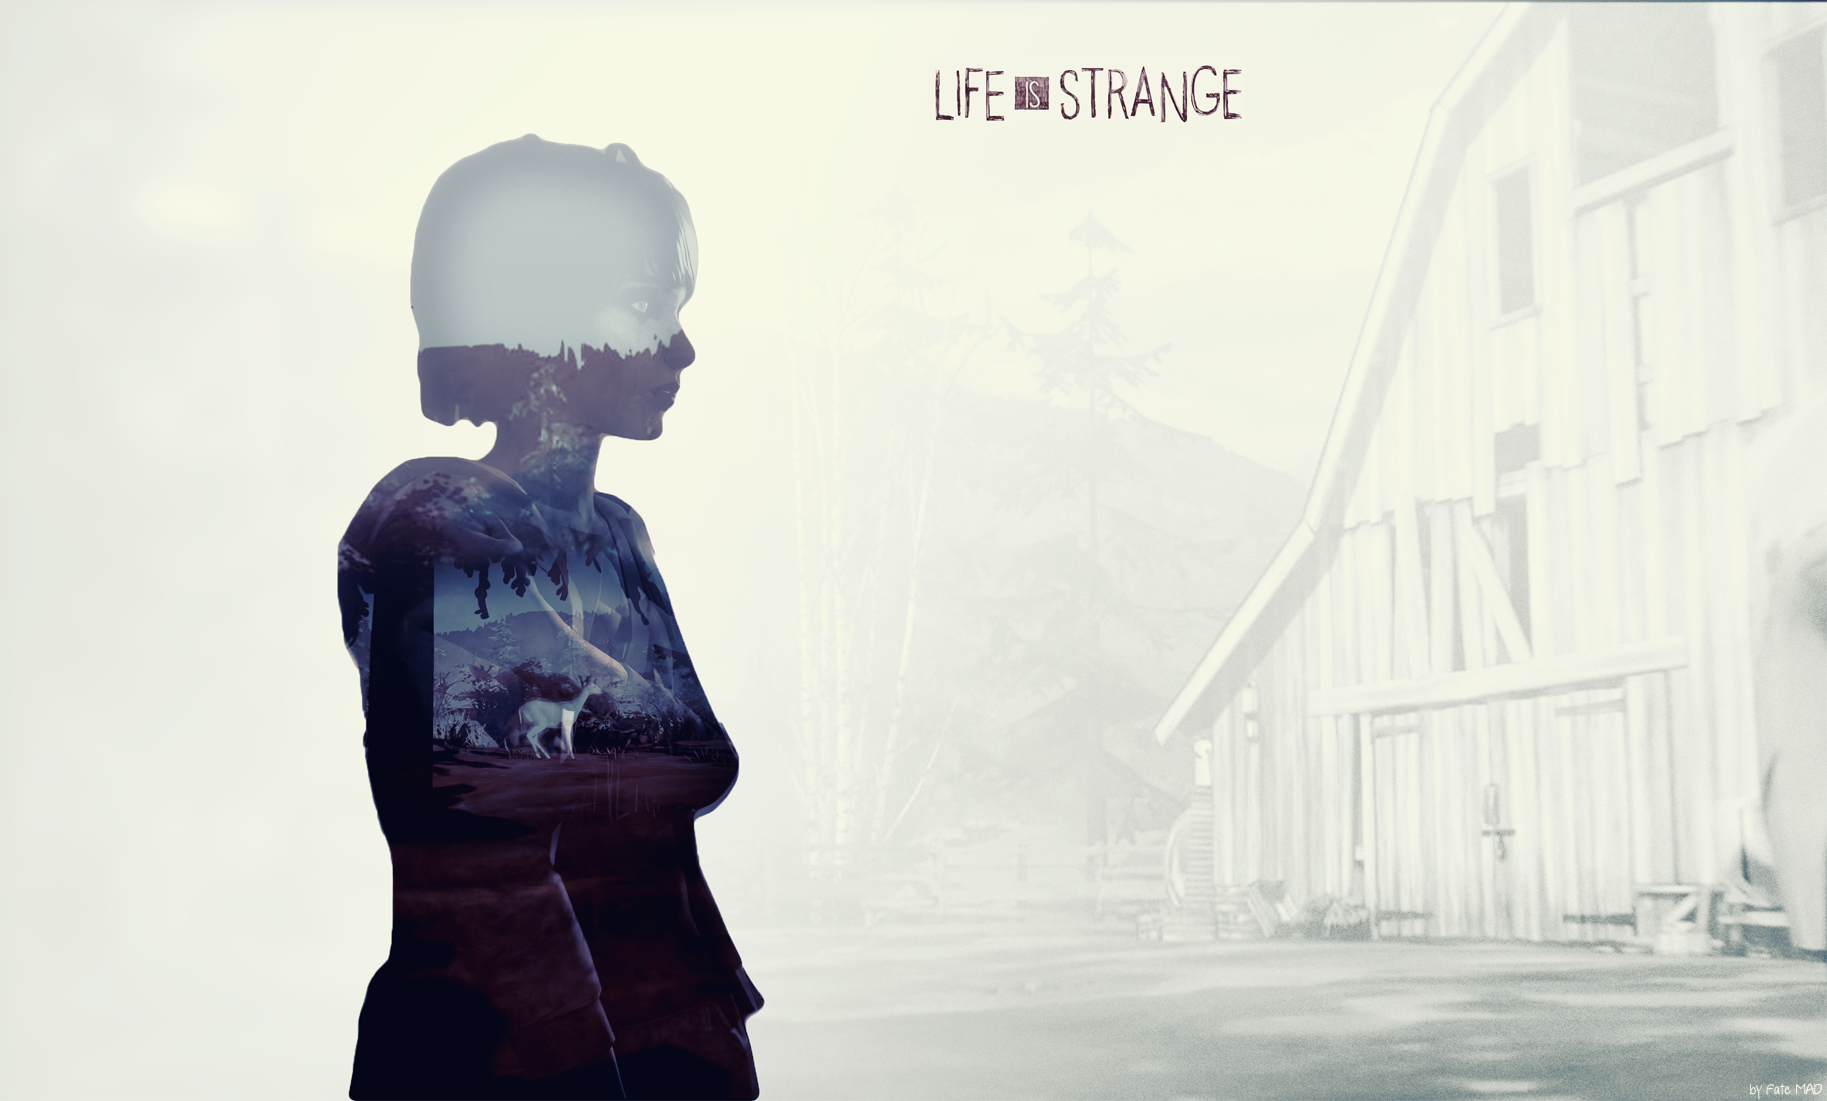 Free Download Life Is Strange Max By Nickkarlow 1827x1101 For